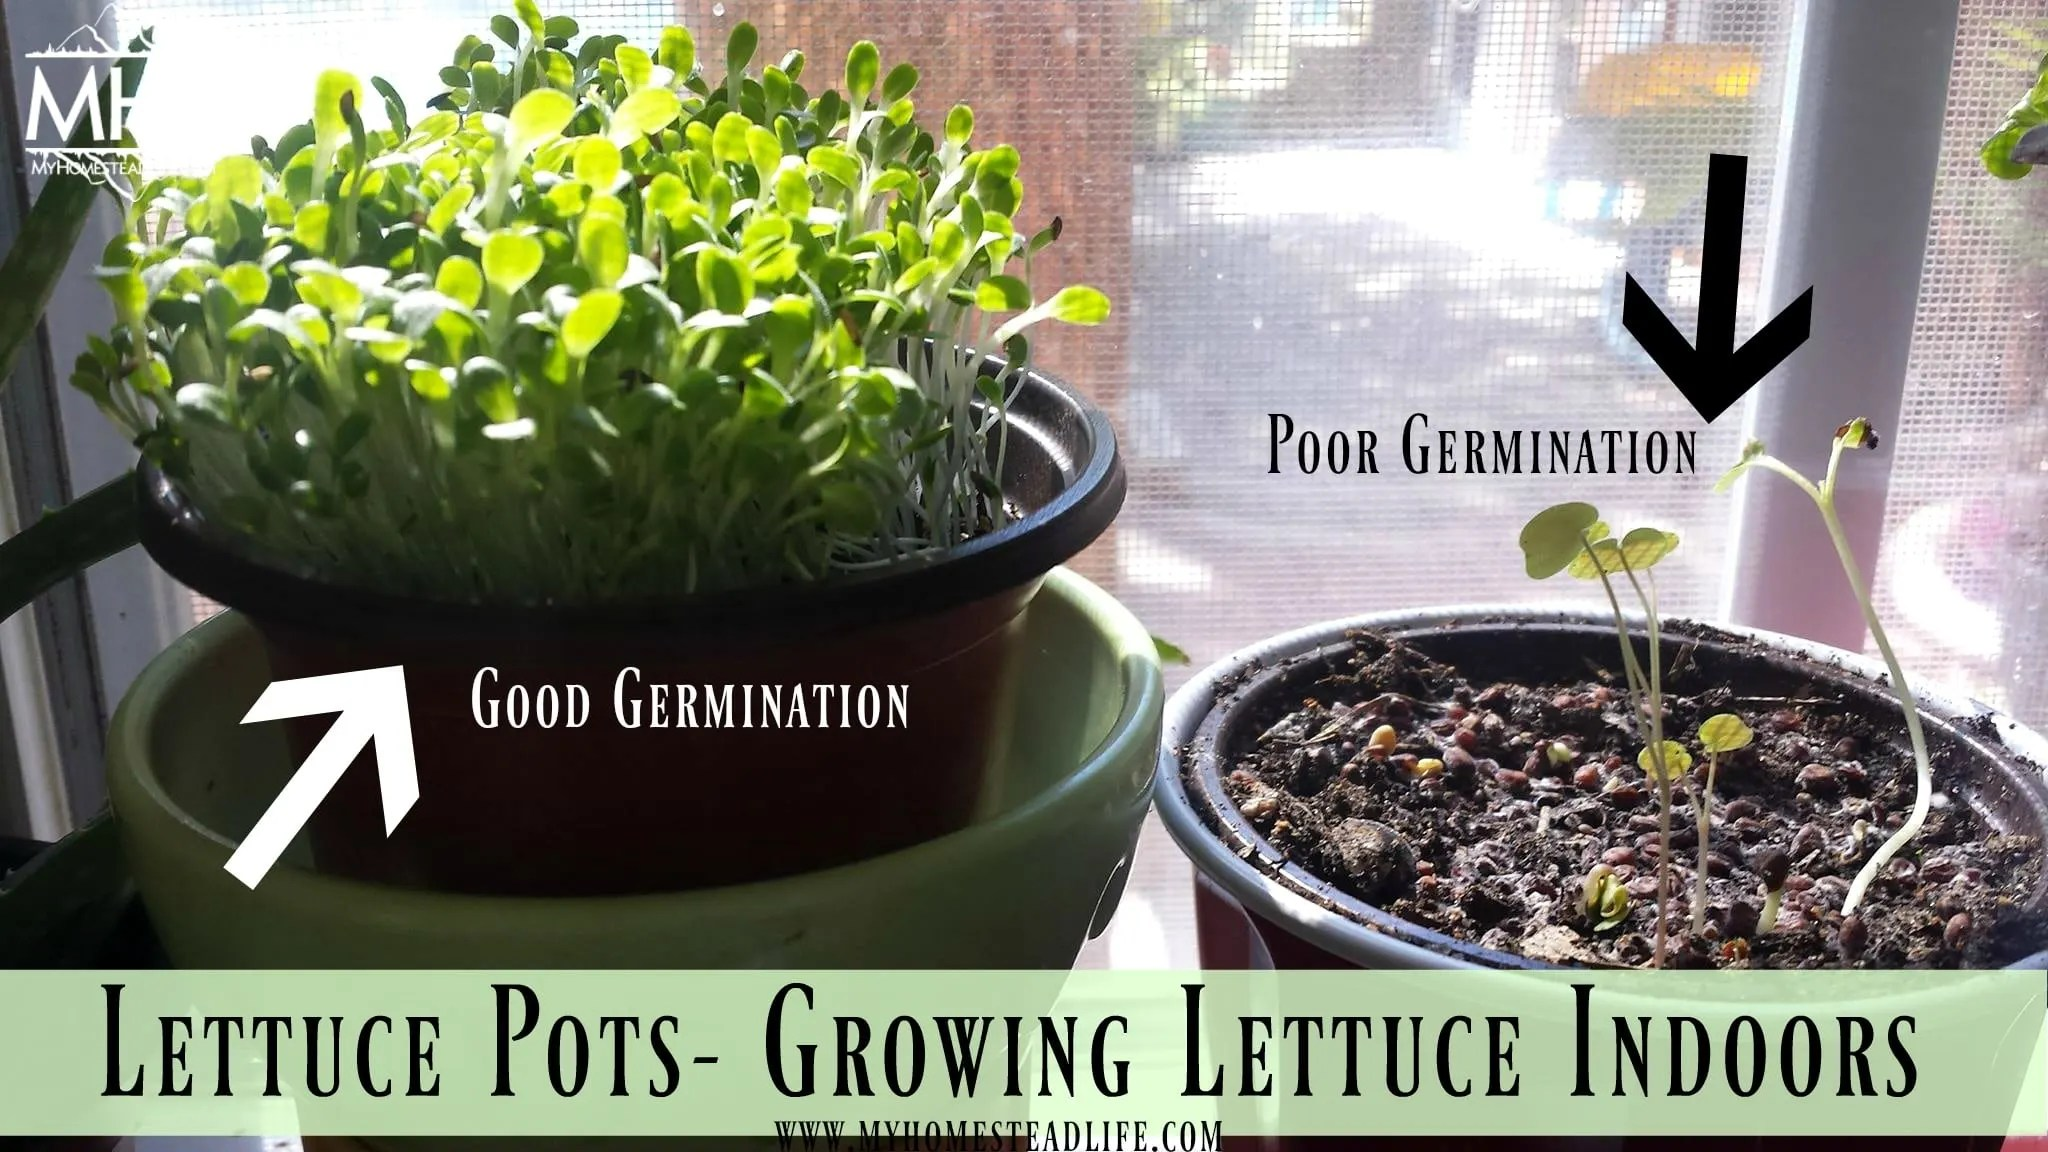 Lettuce Pots- Growing Lettuce Indoors- germination